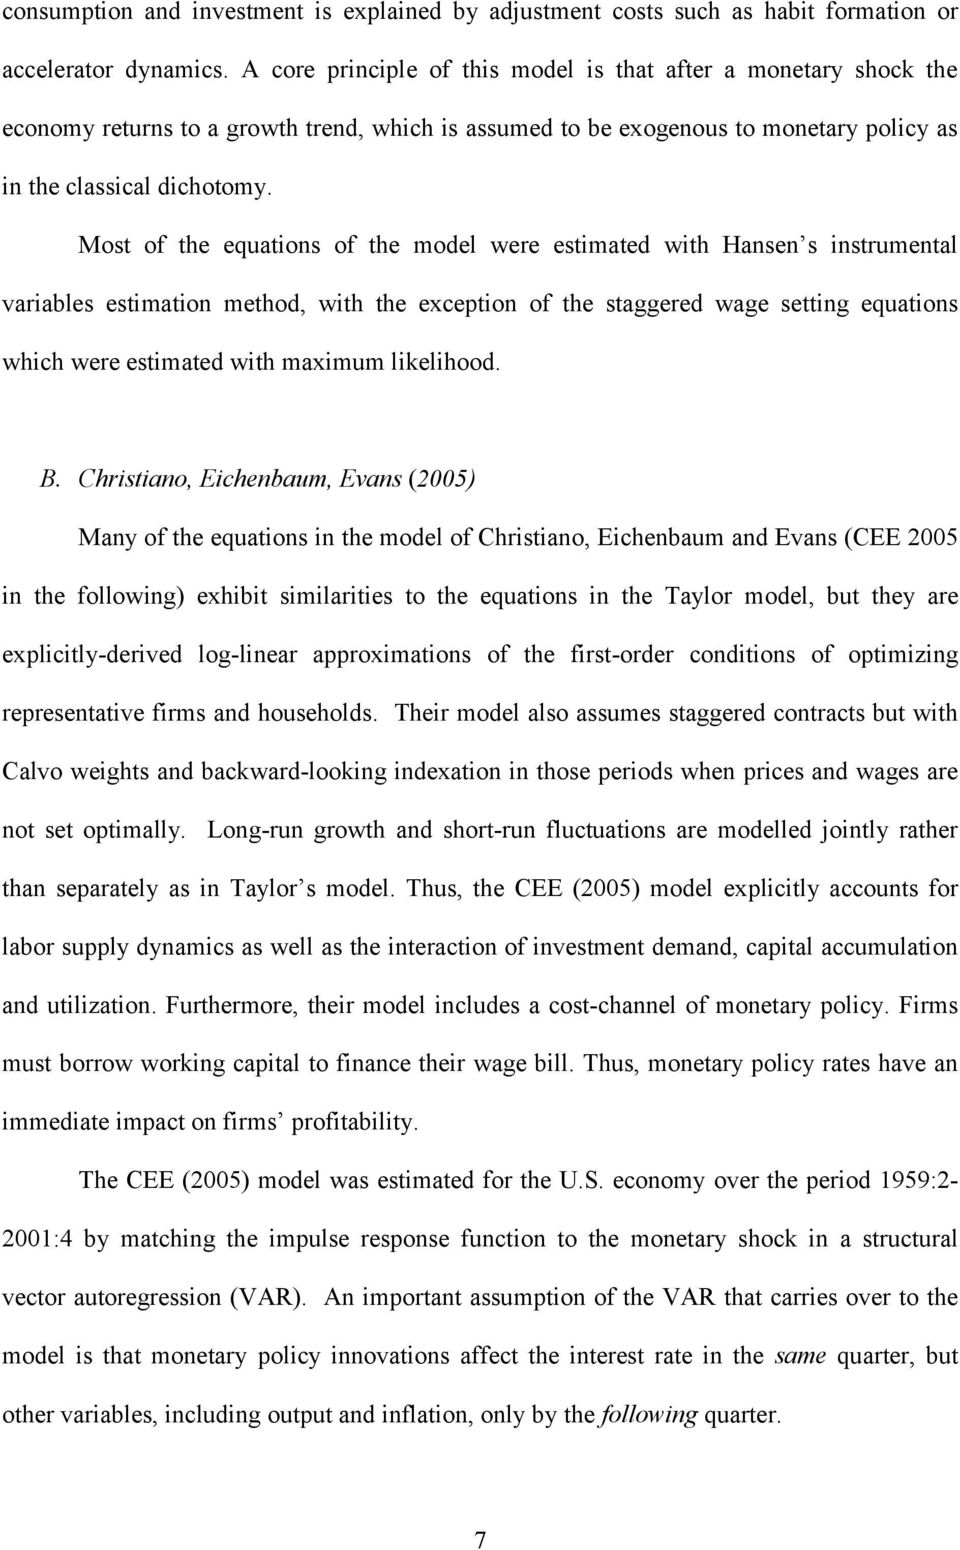 Most of the equations of the model were estimated with Hansen s instrumental variables estimation method, with the exception of the staggered wage setting equations which were estimated with maximum